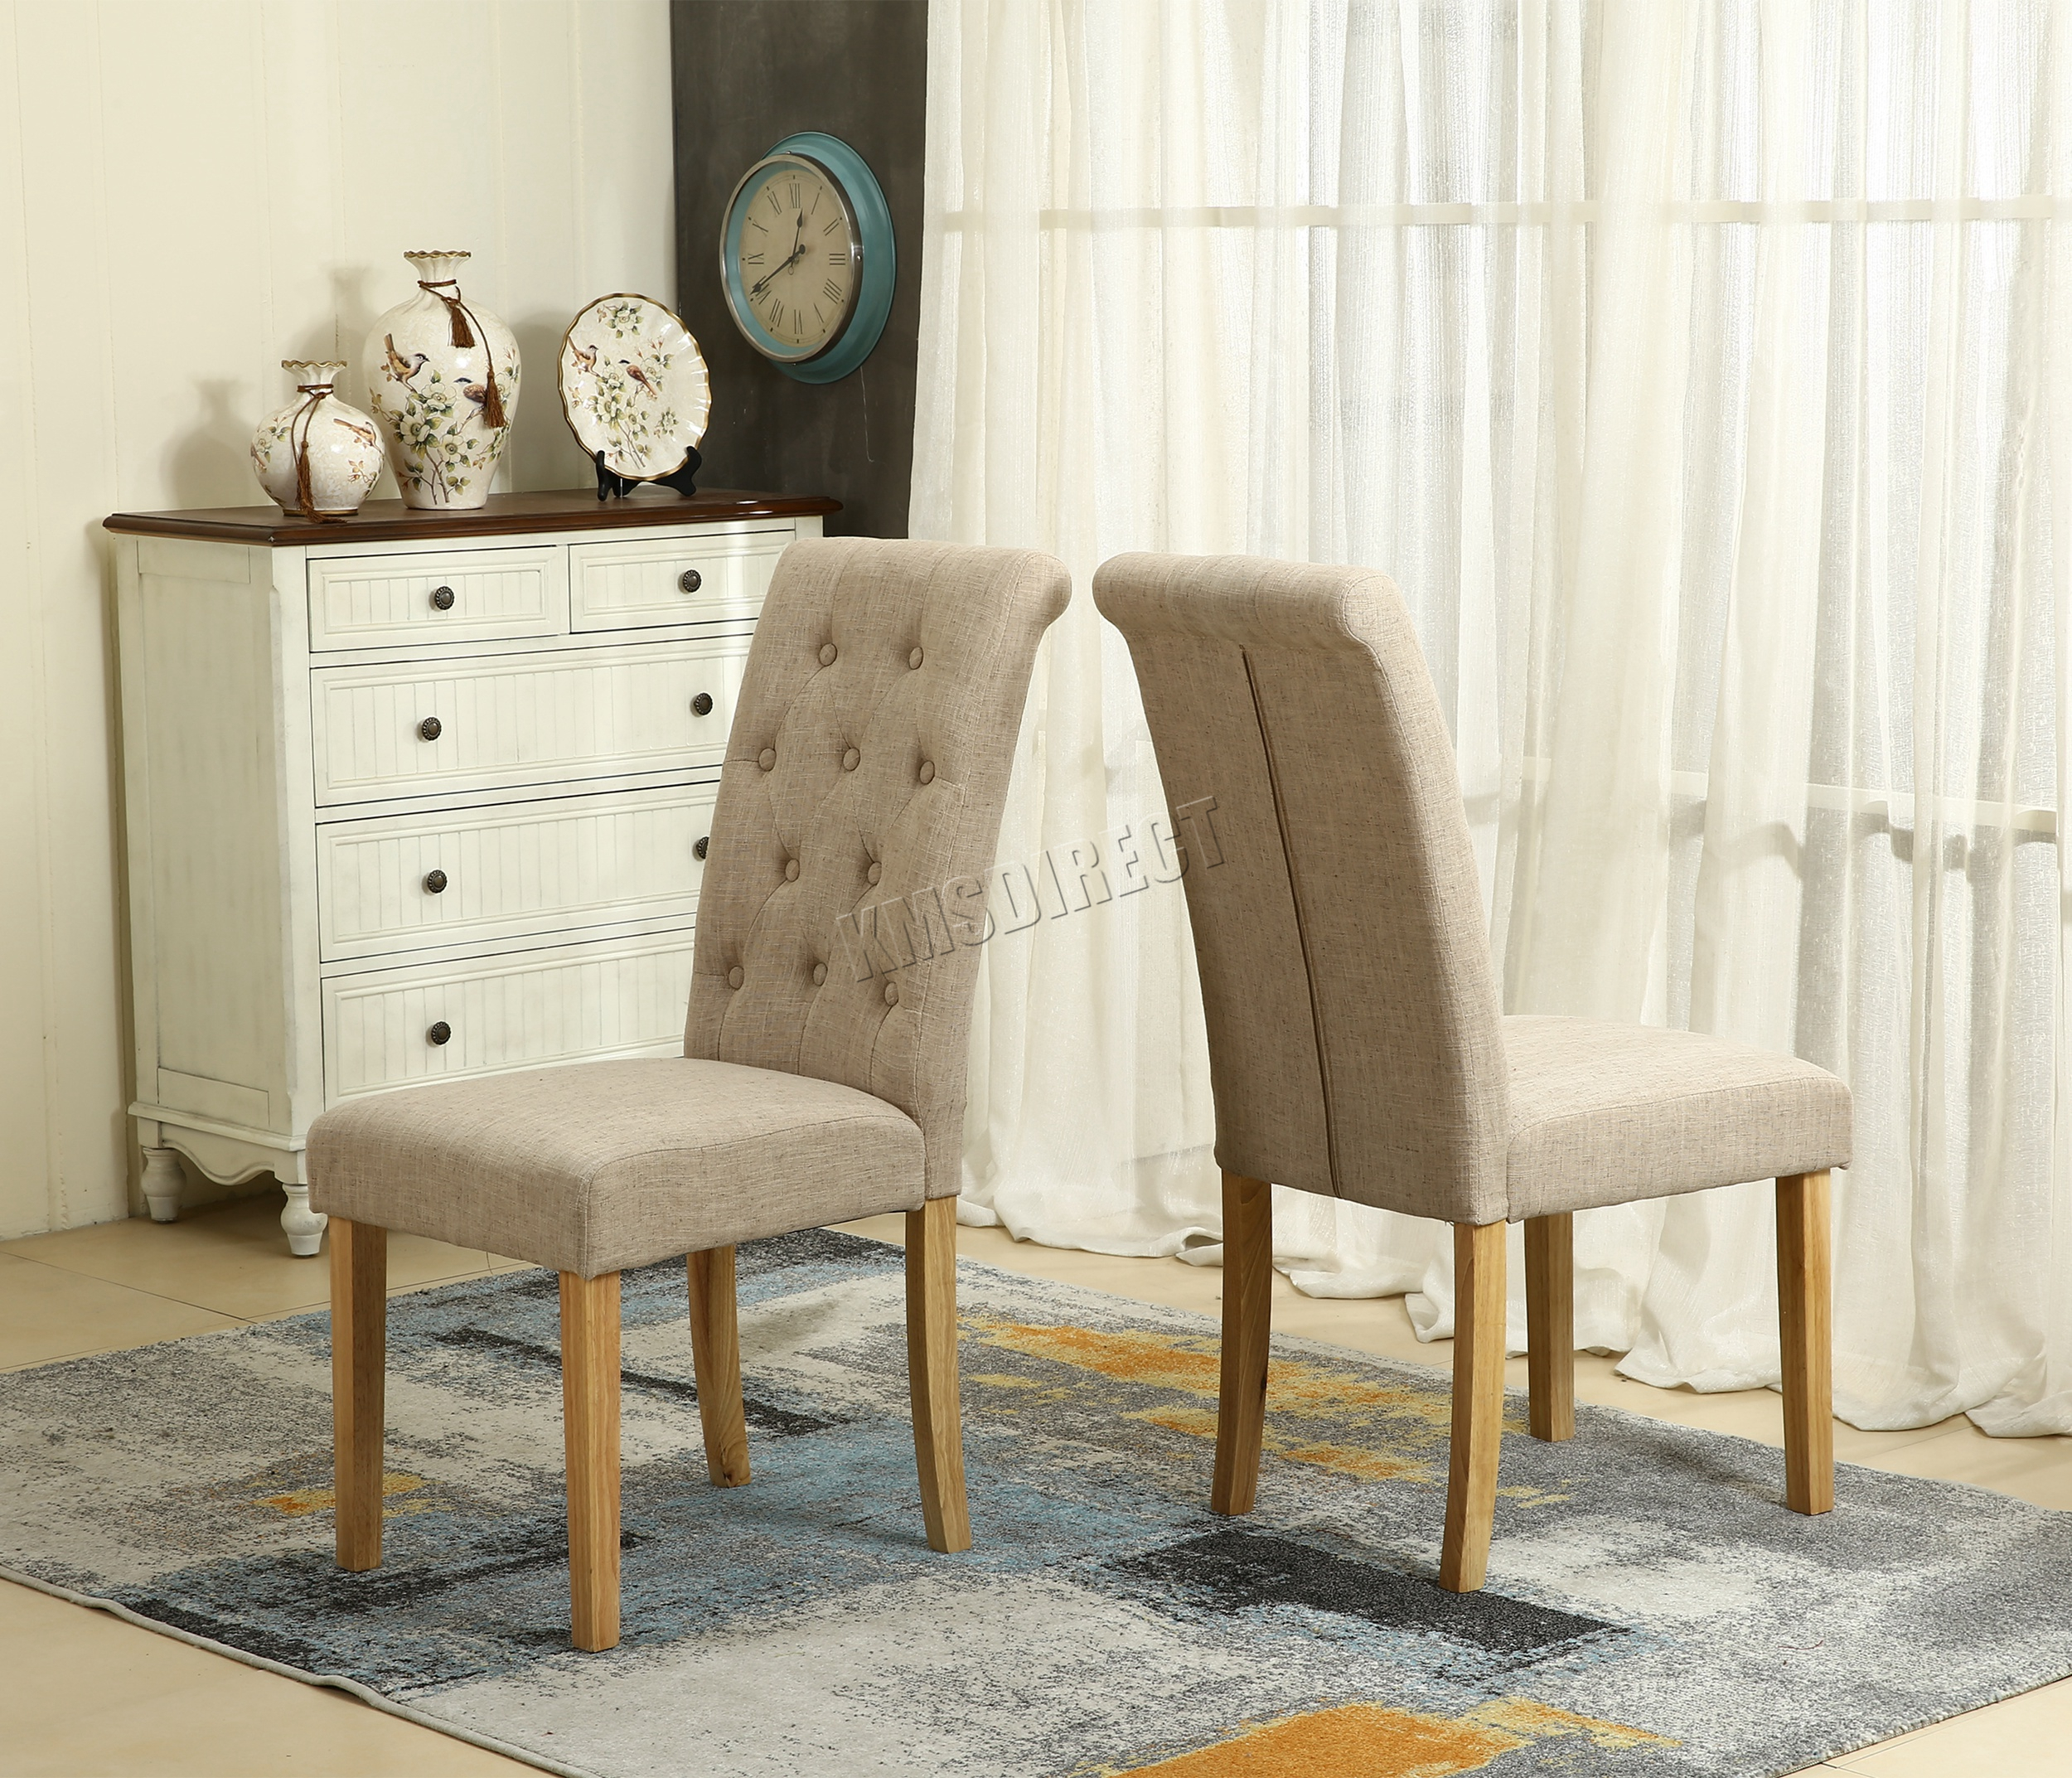 Dining Room Chairs Fabric: WestWood Cream Linen Fabric Dining Chairs Scroll High Back